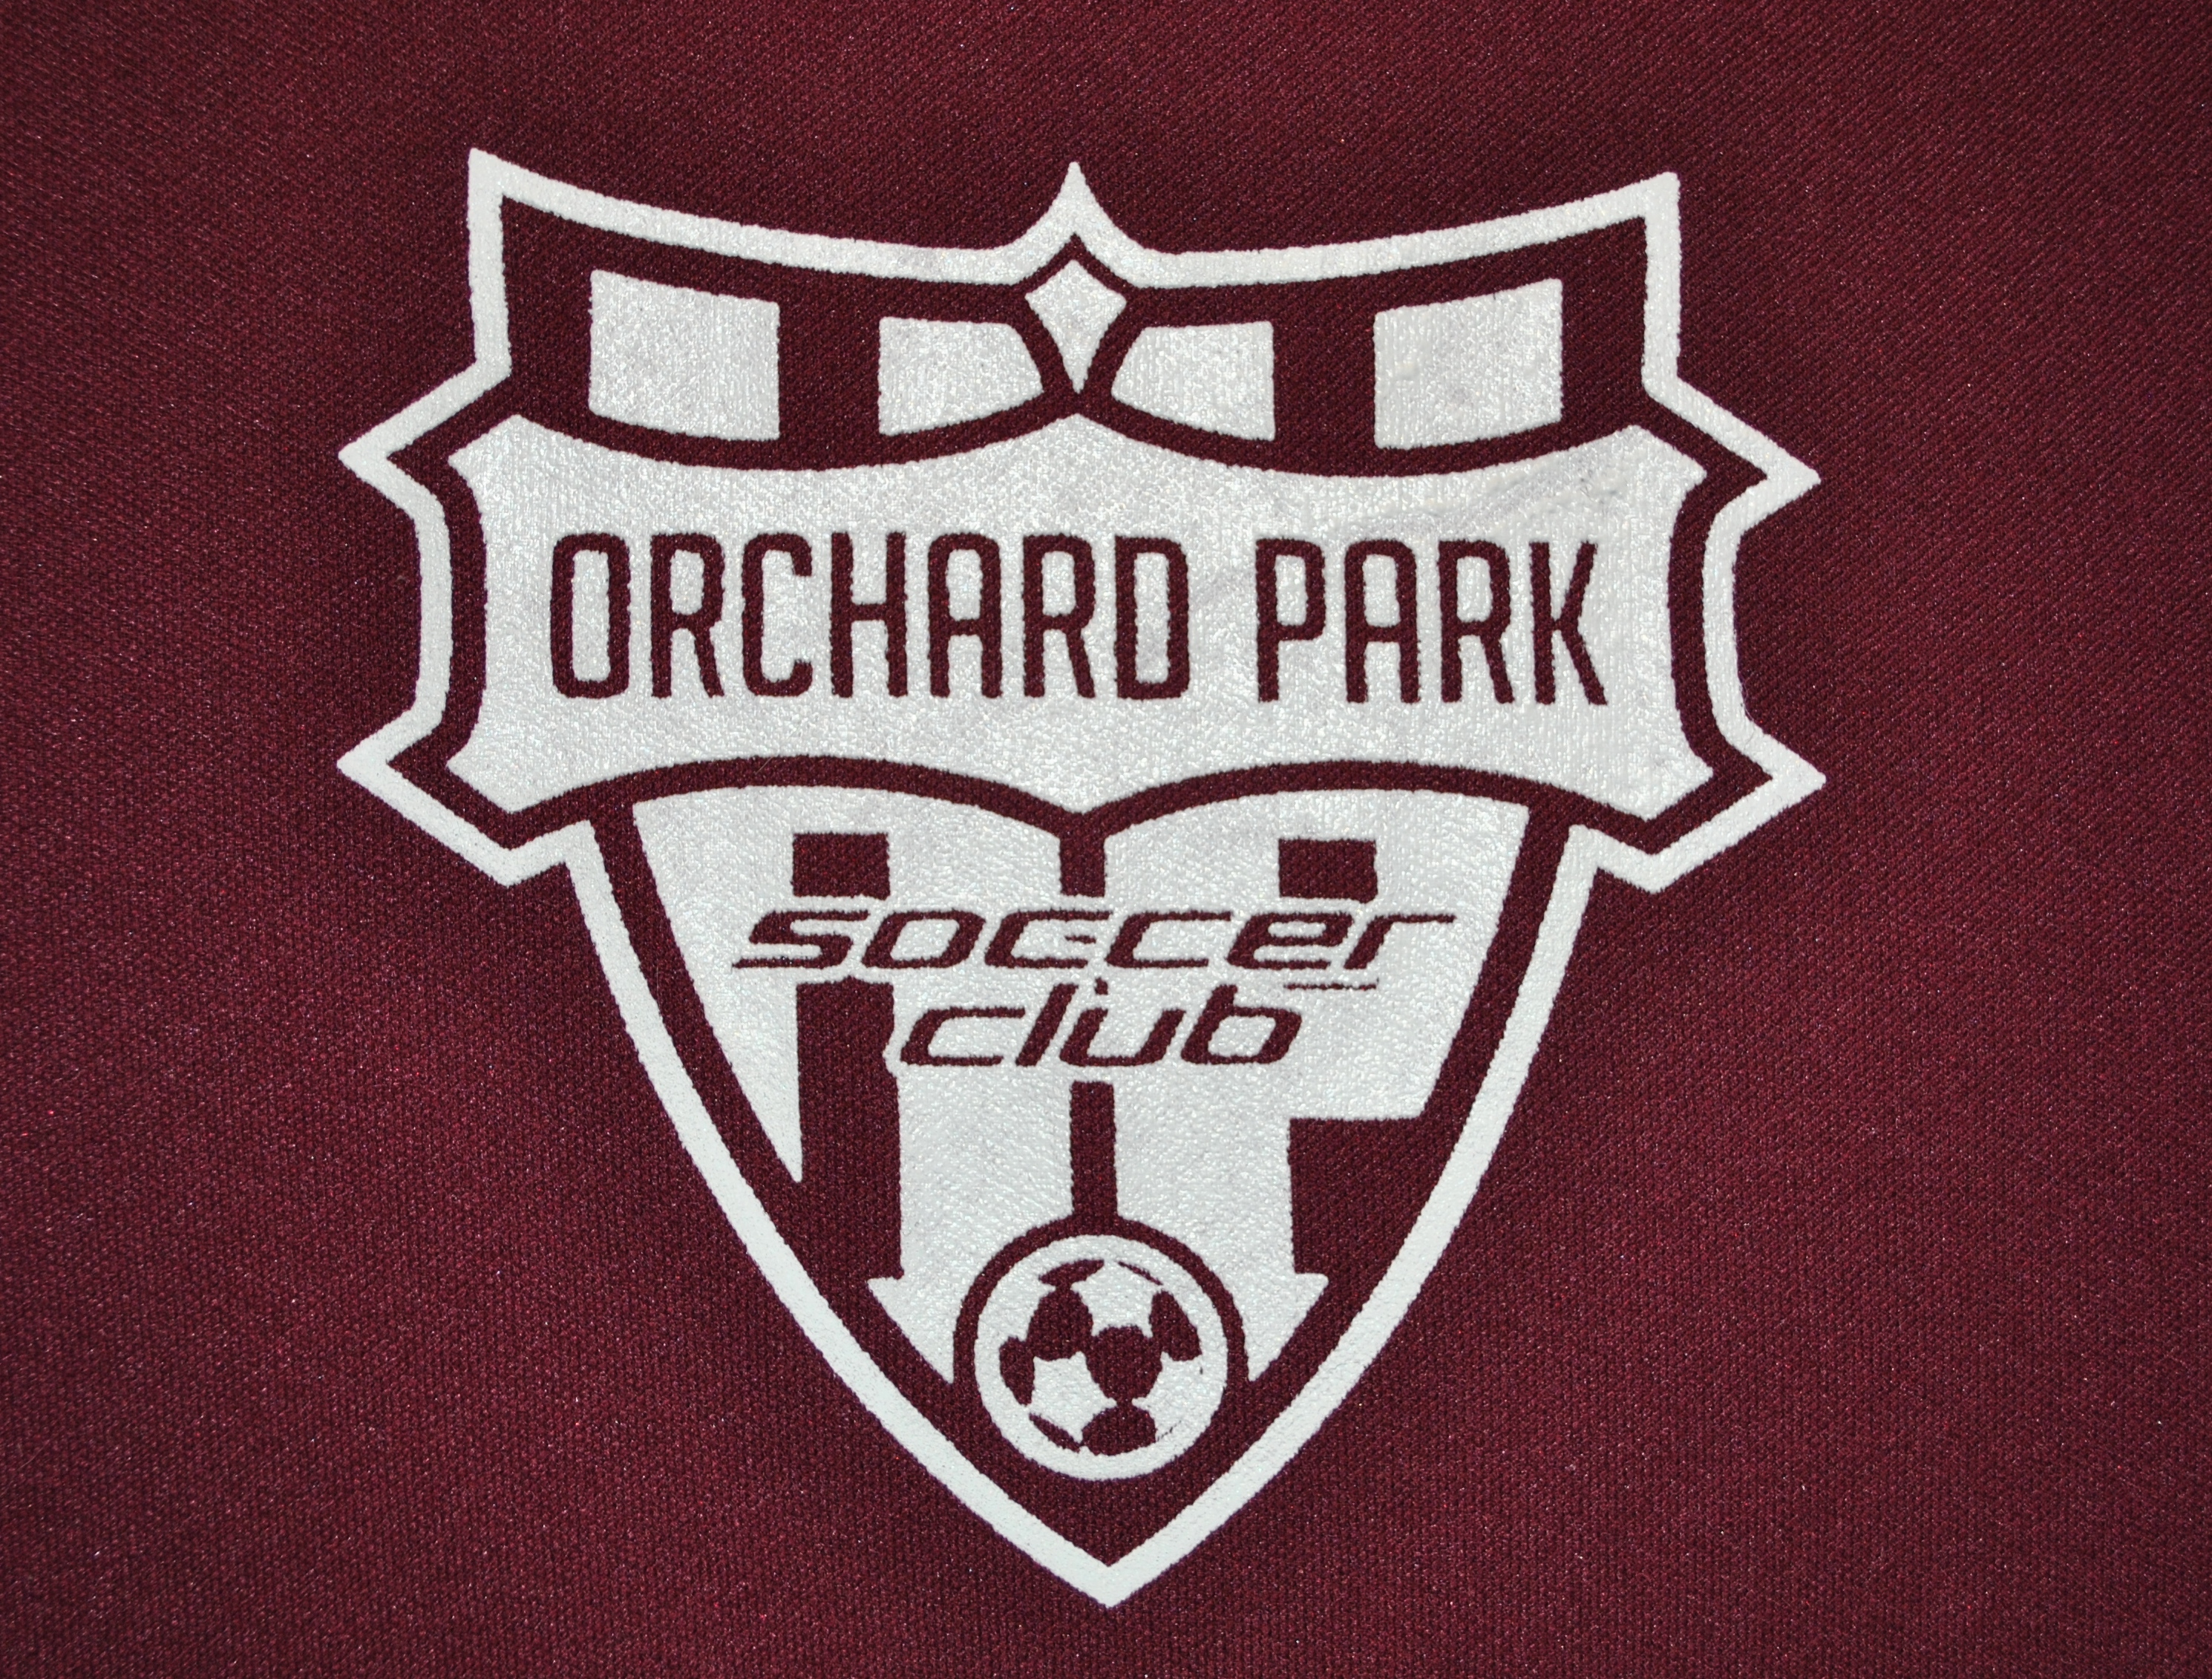 Orchard park soccer club orchard park soccer club for Orchard park